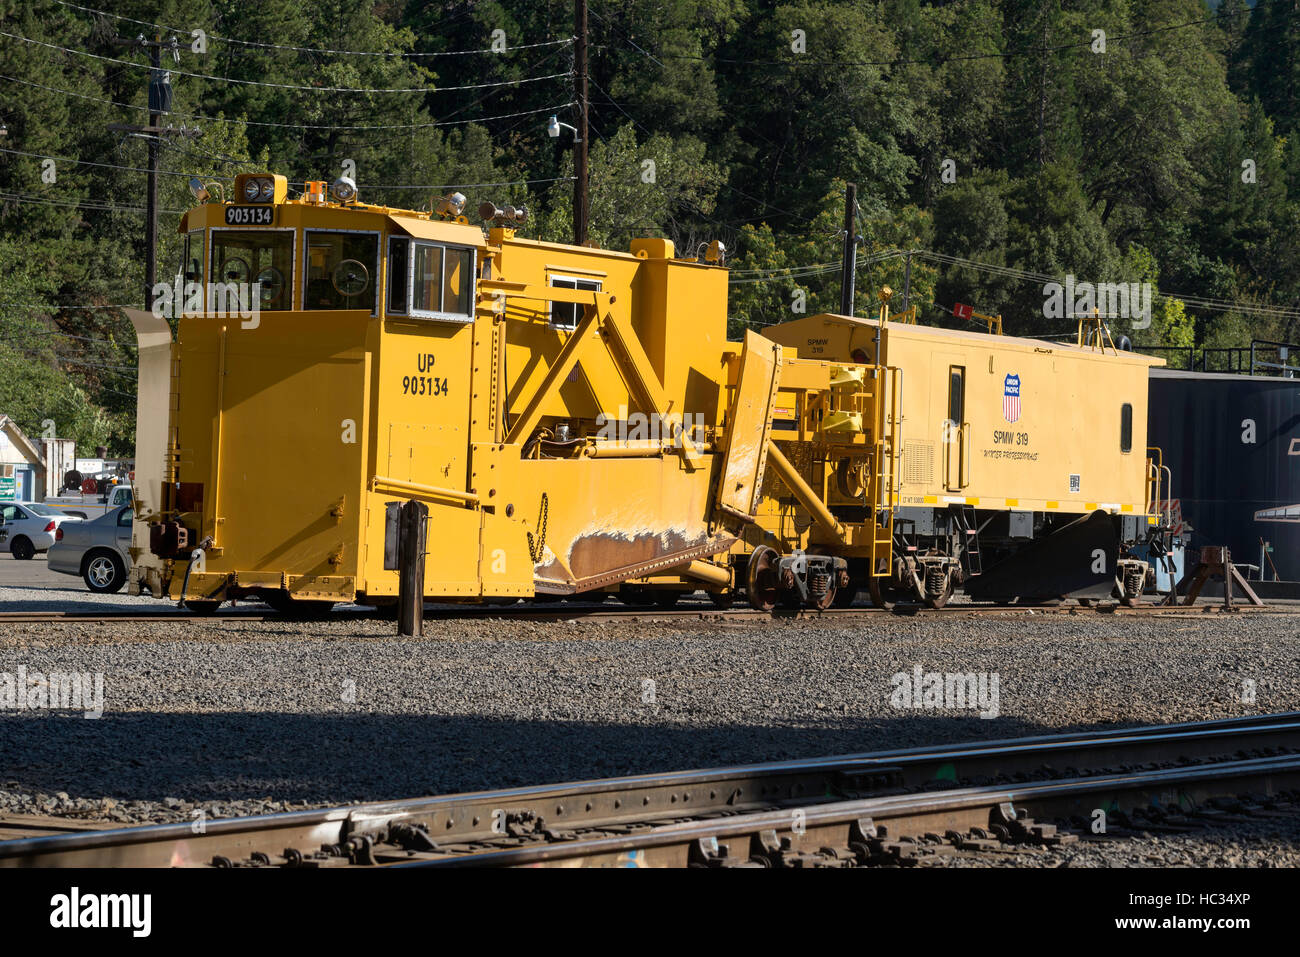 Union Pacific spreader in the Dunsmuir California rail yard. - Stock Image